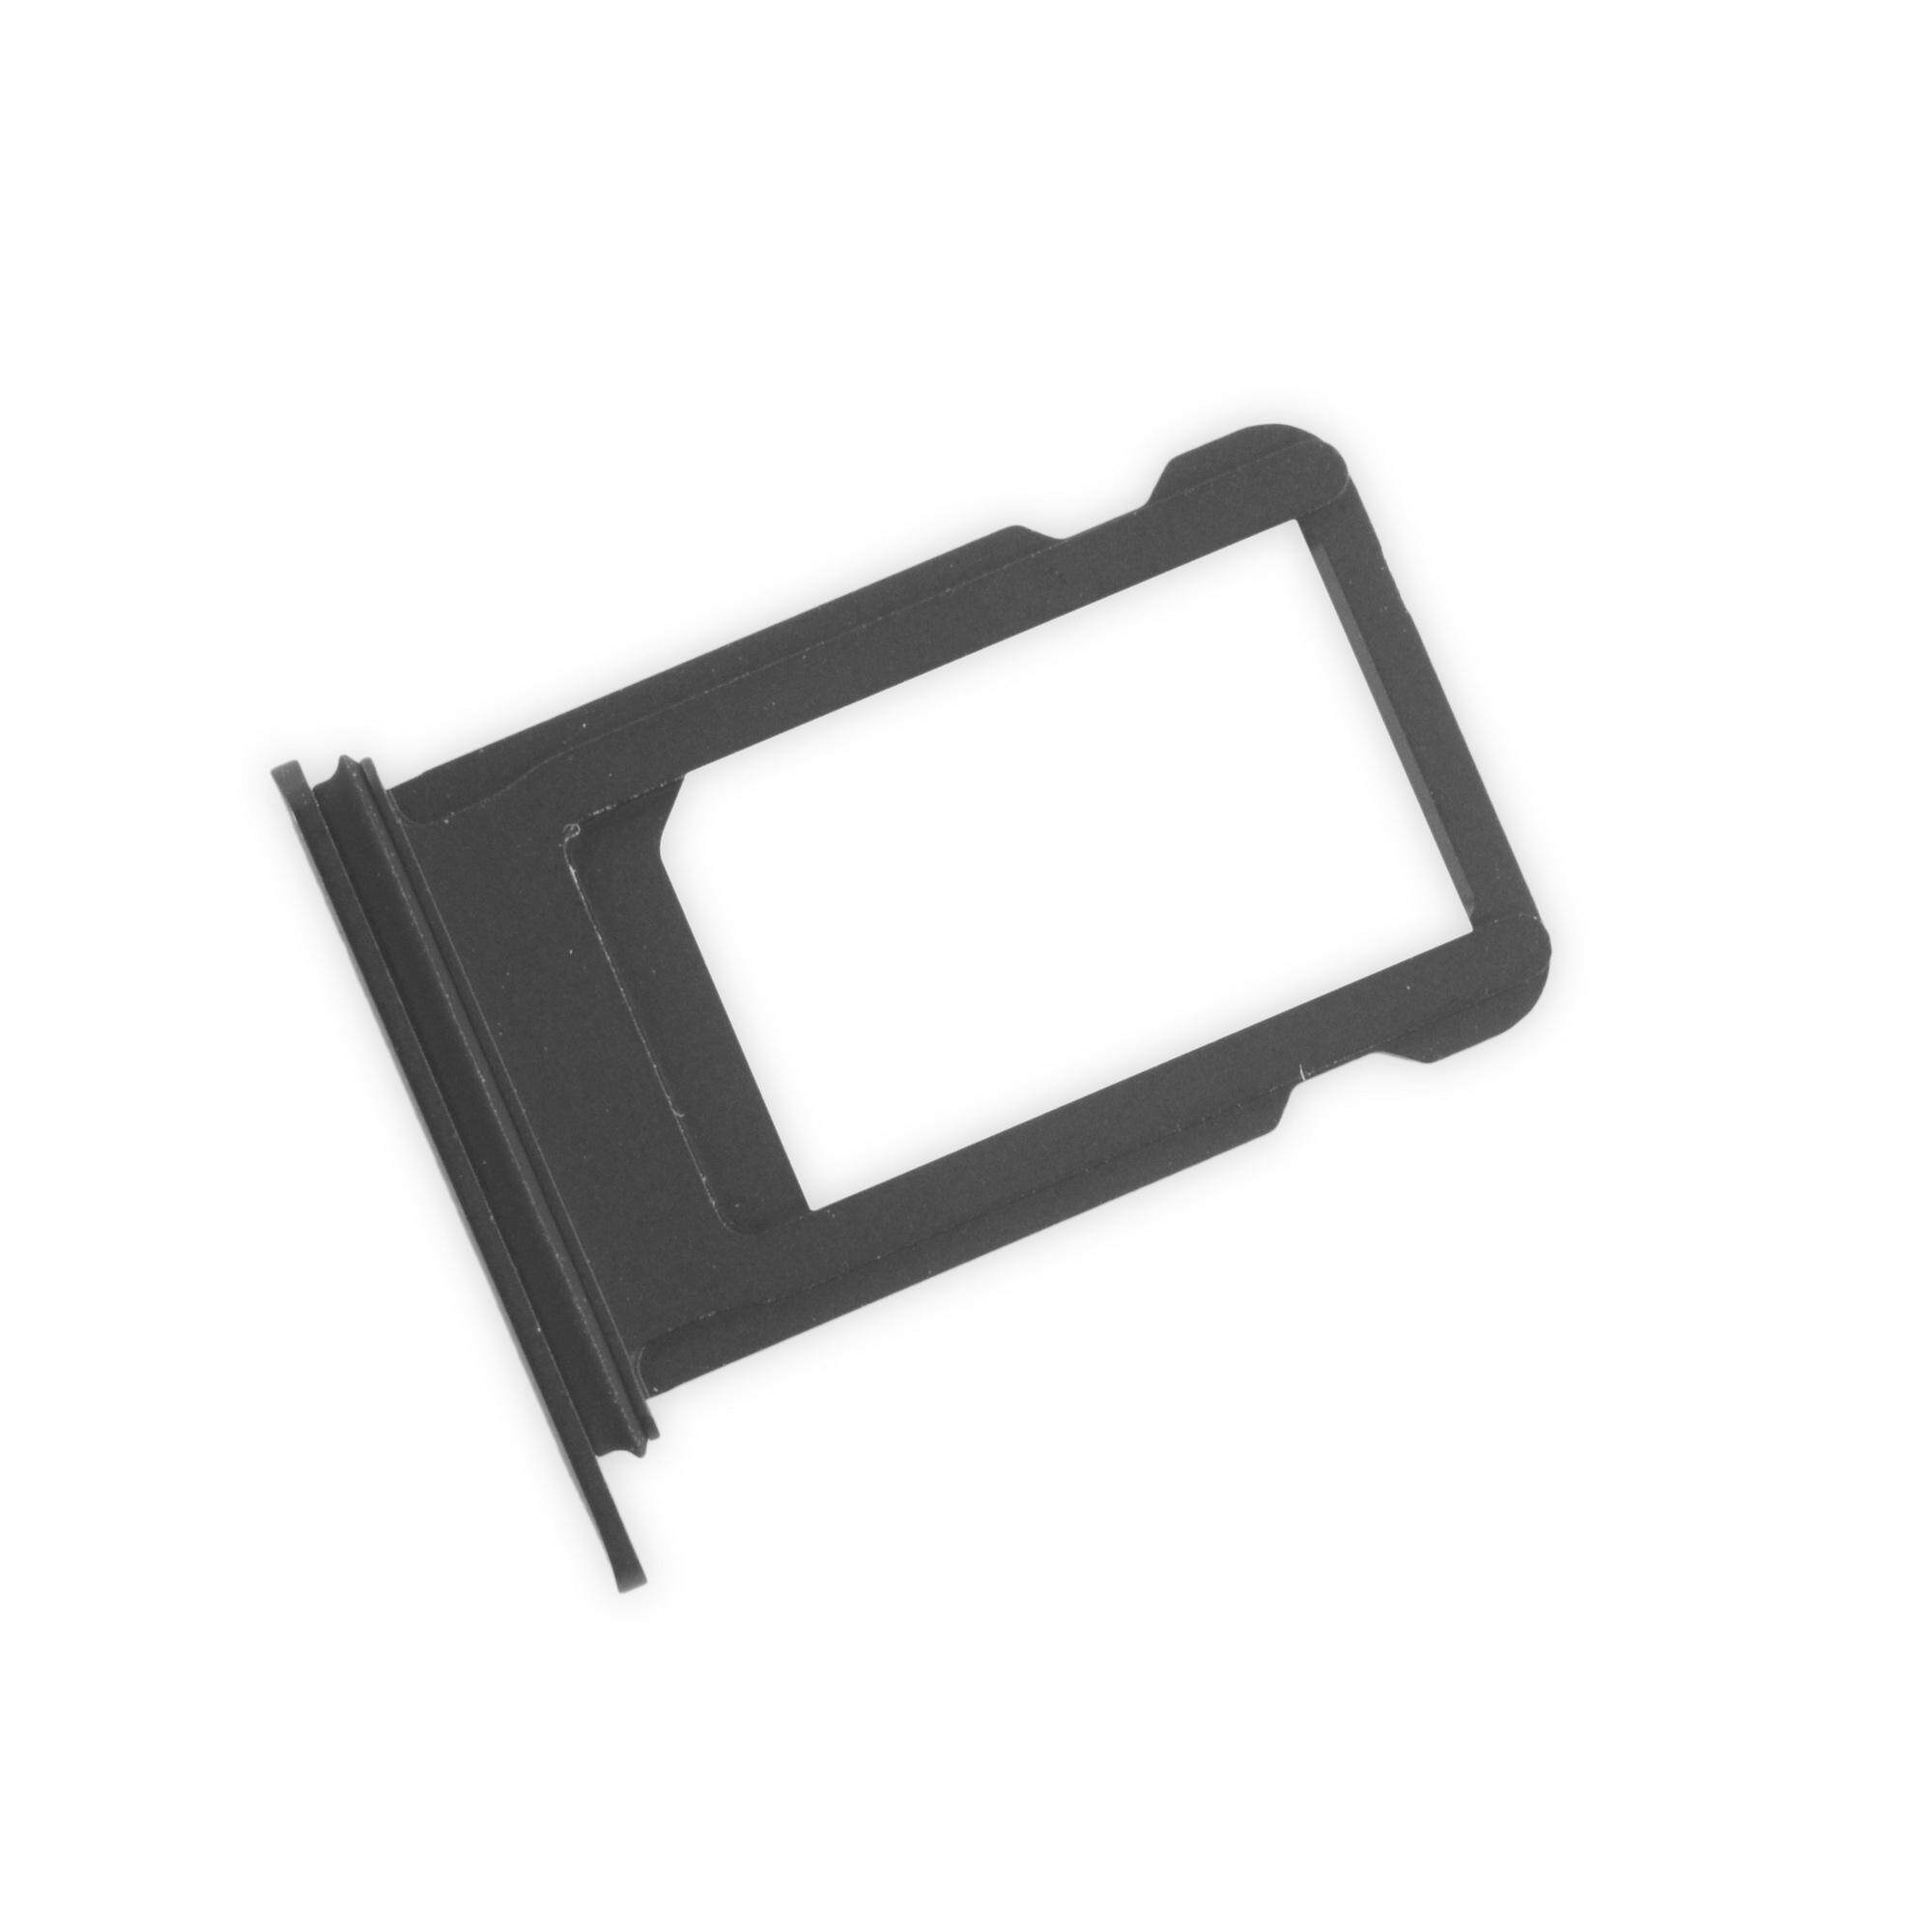 Replacement Parts For The Best Prices In Malaysia Sony Xperia P Circuit Diagram Cellcare Iphone 7 Sim Card Tray Holder Rose Gold